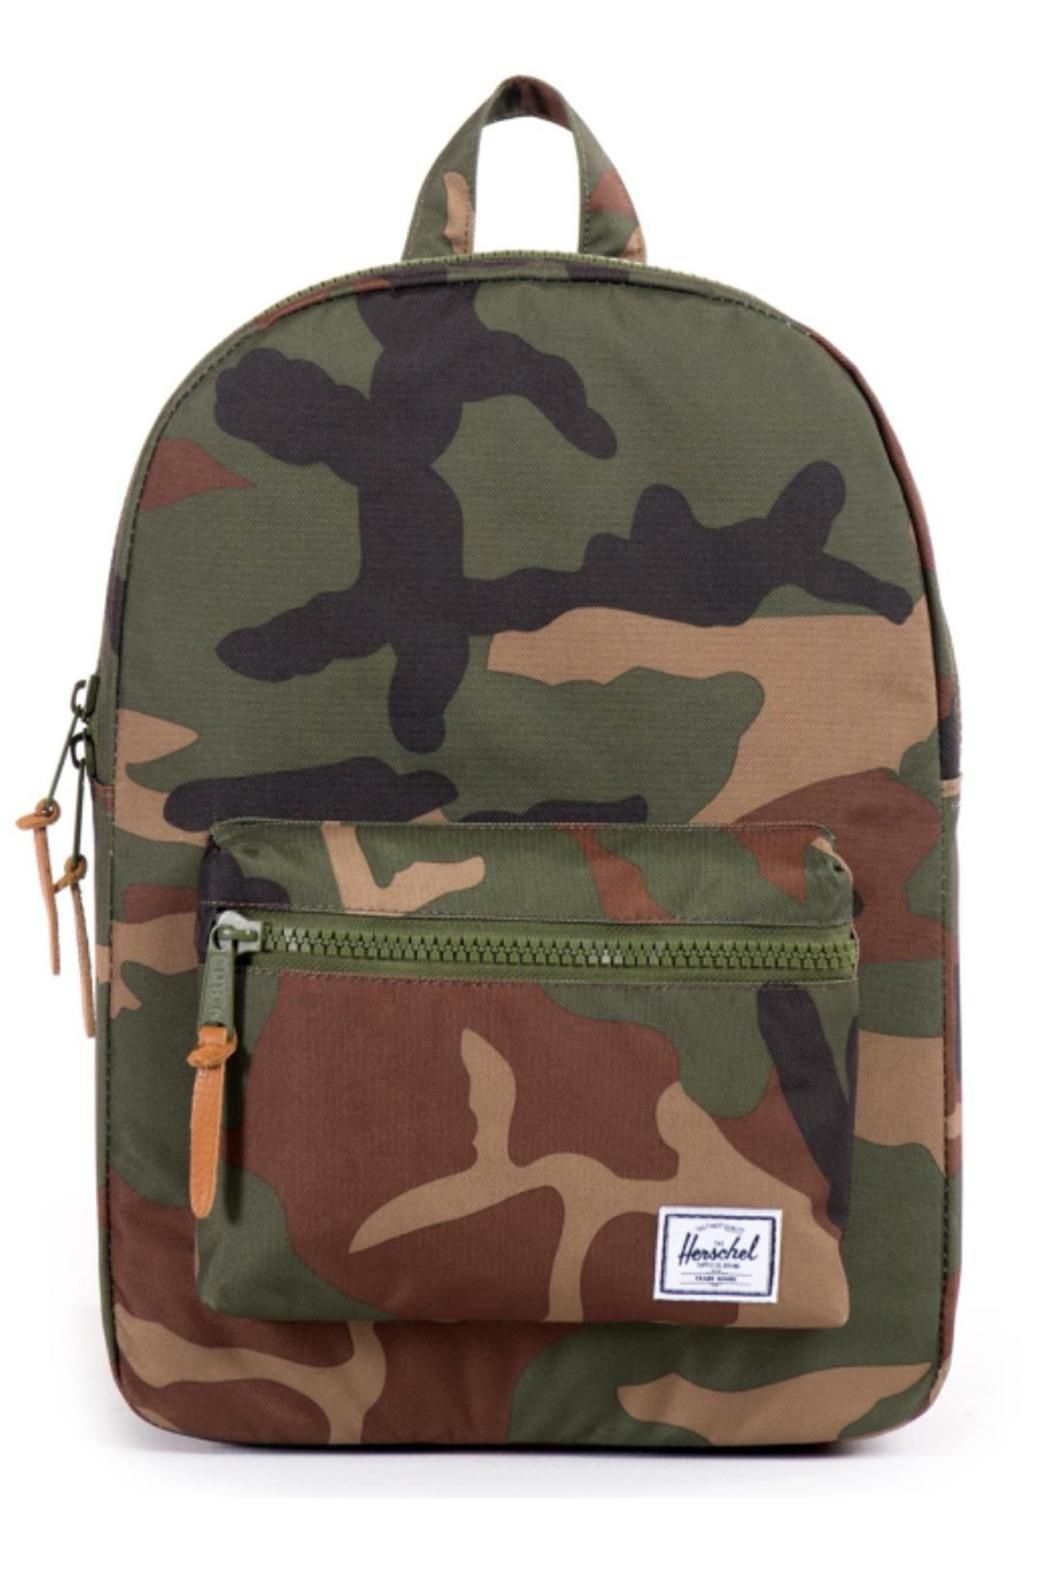 Herschel Supply Co. Herschel Kids Backpack | Herschel kids ...